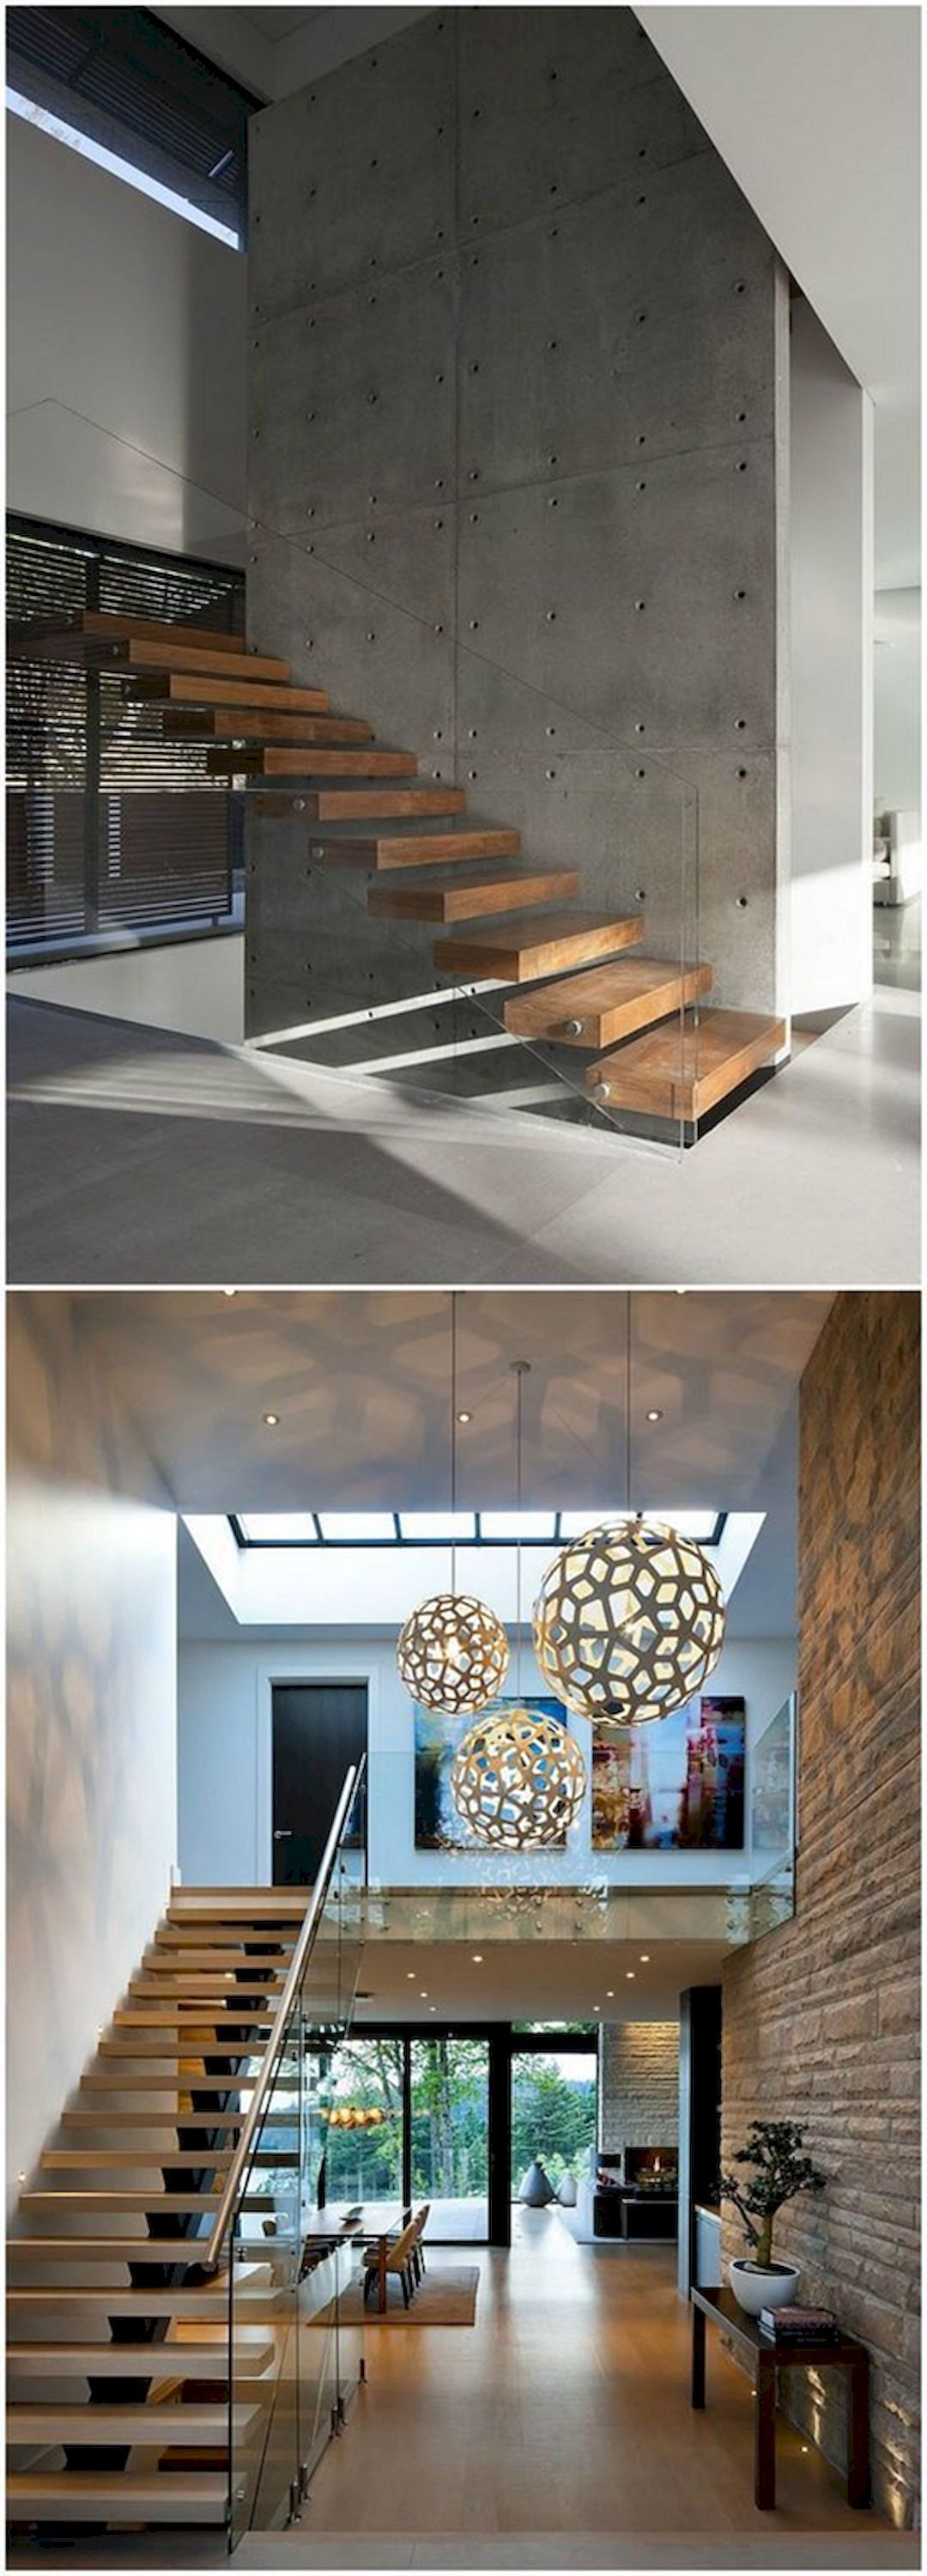 80 Super Cool Modern Home or Apartment Interior Ideas | Häuschen